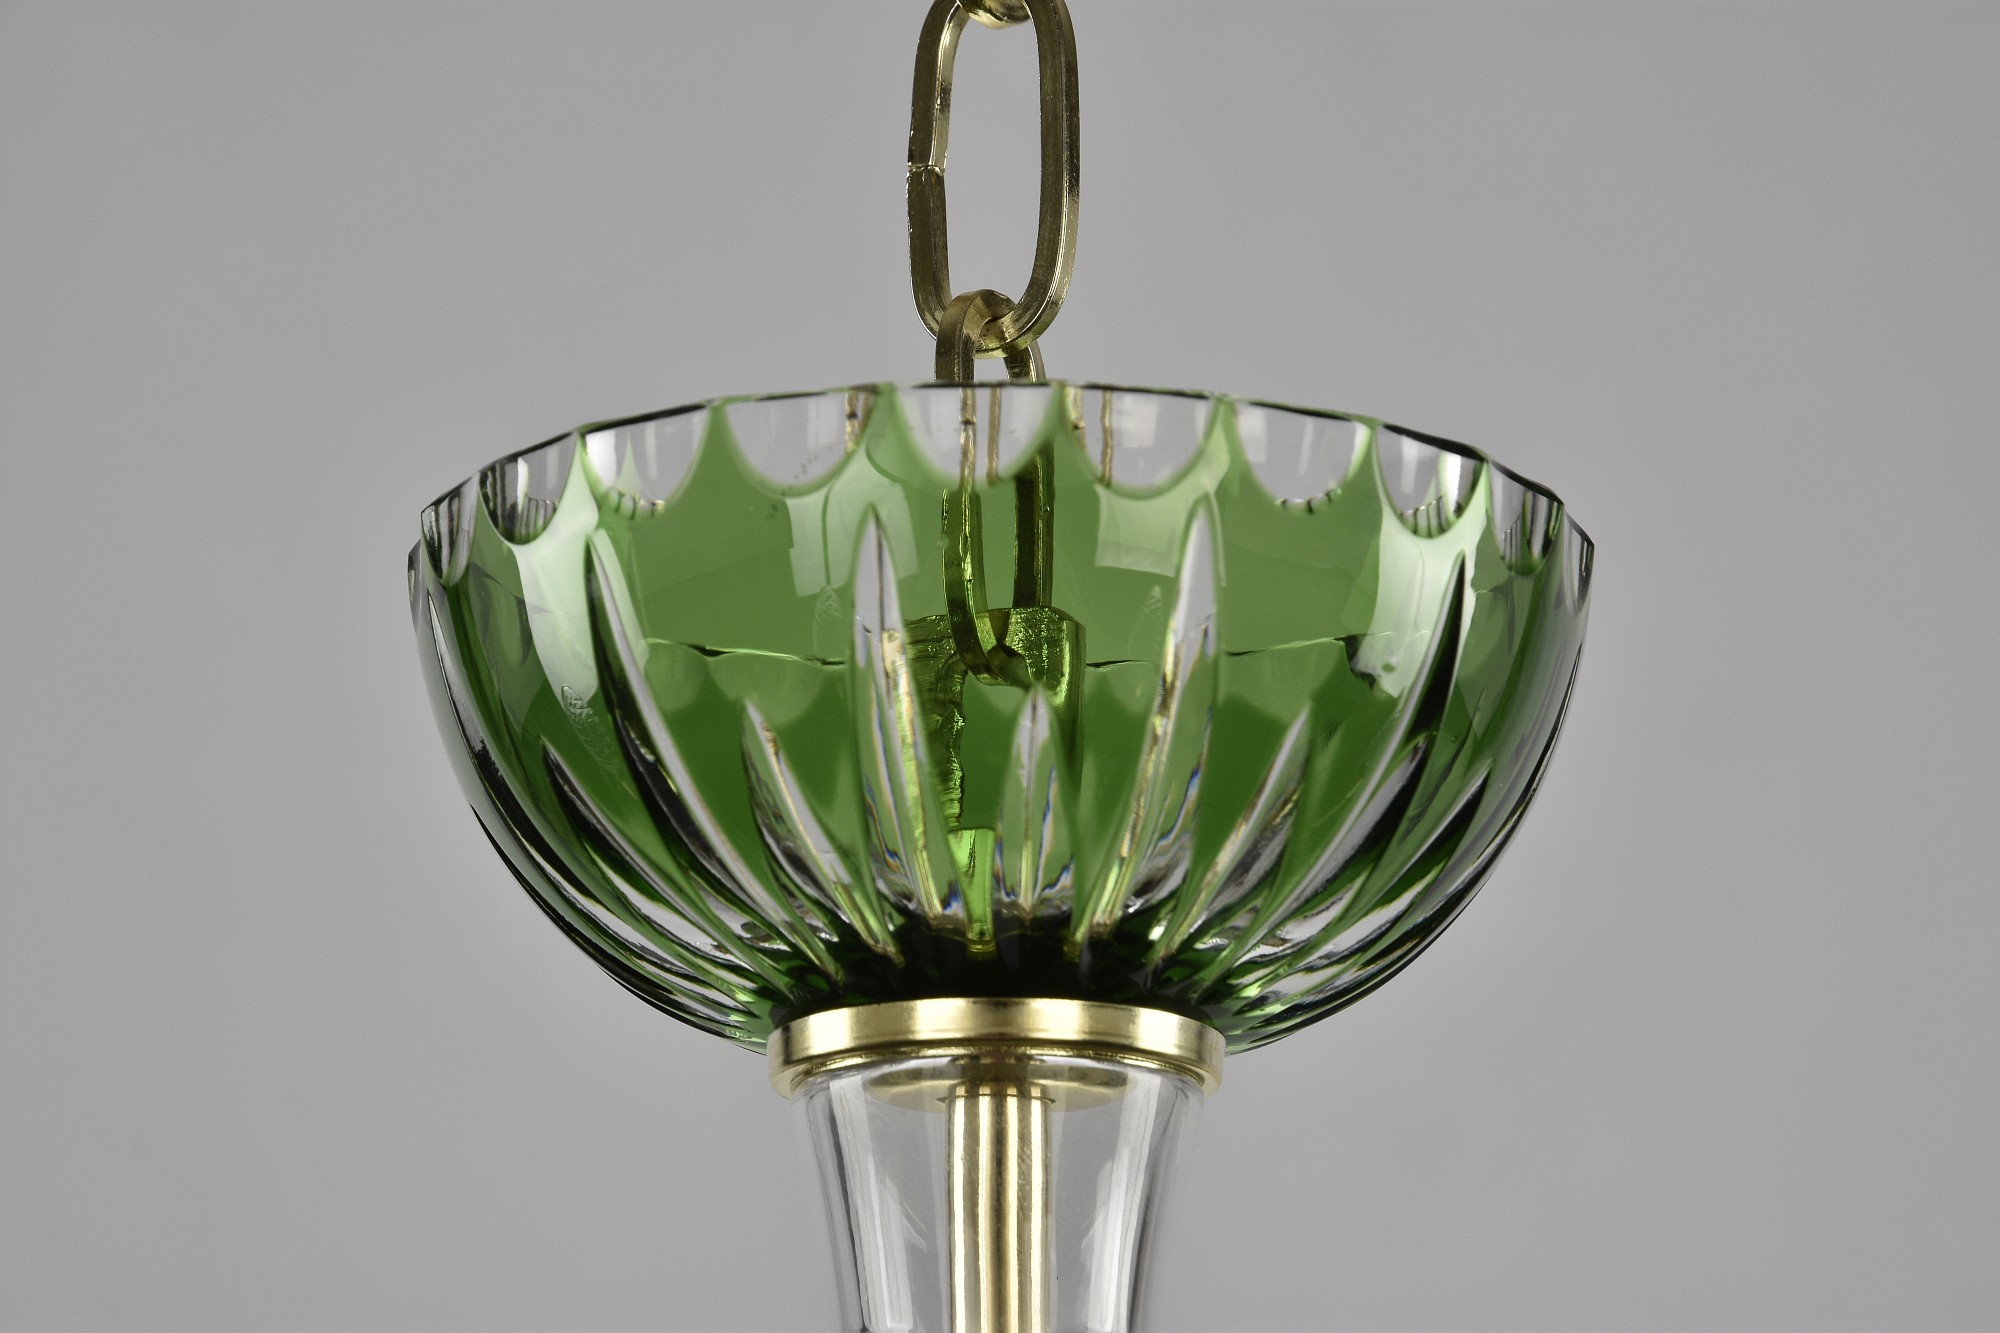 Подвесная люстра Bohemia Ivele Crystal Ivele Crystal 2 1309/8/240 G Cl/Clear-Green/H-1J